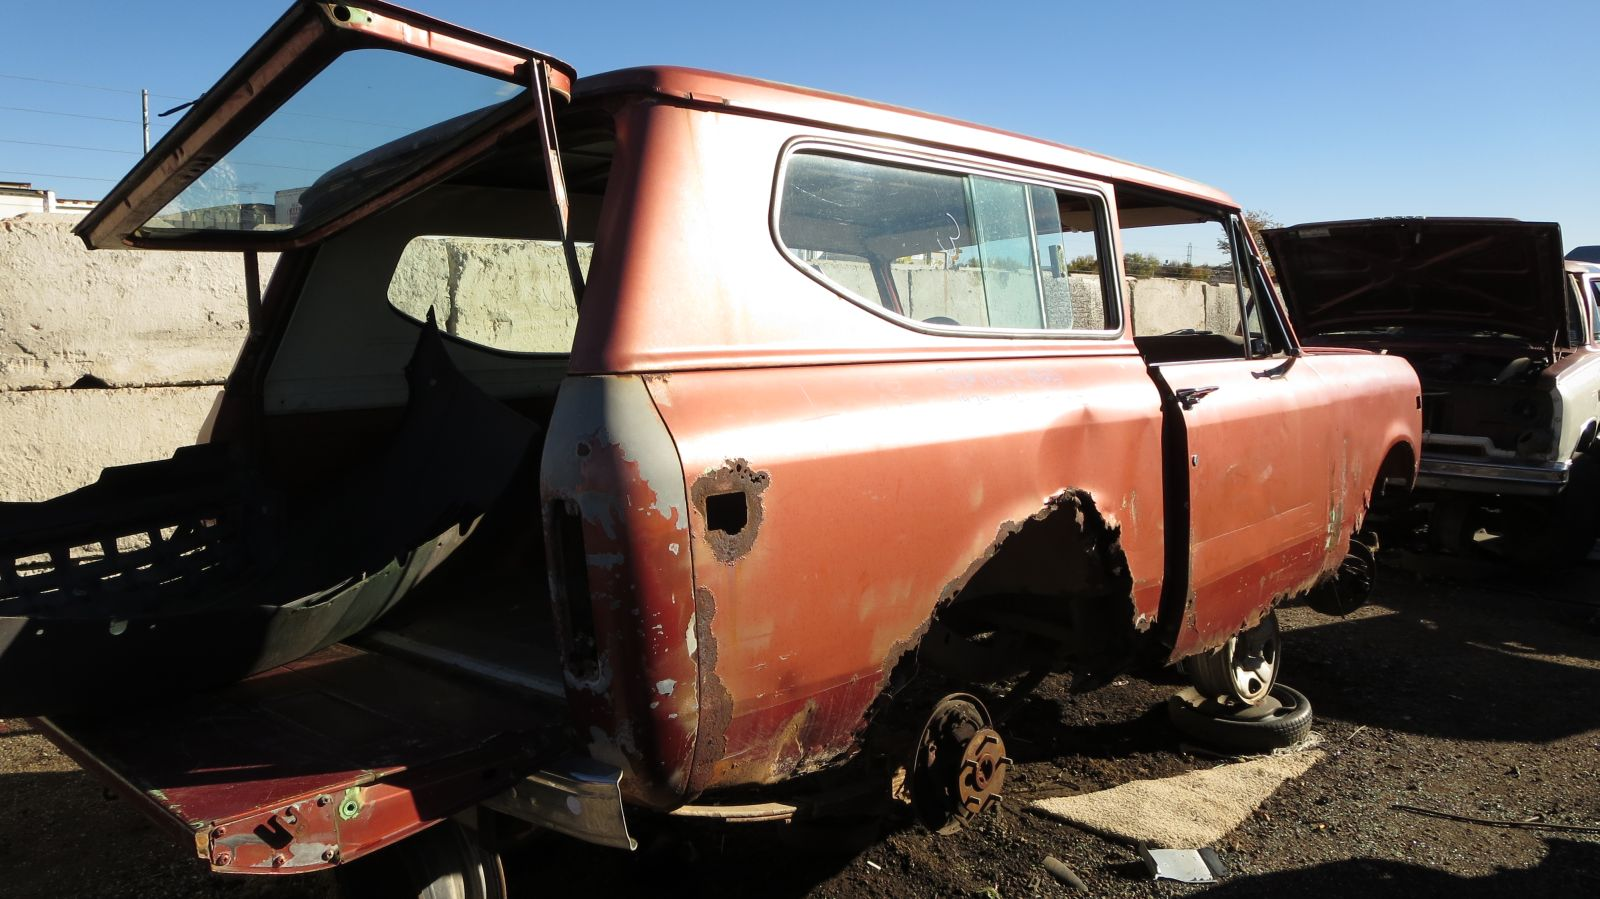 Home by year 1979 cars 1979 trucks car pictures - 1979 International Harvester Scout In Colorado Junkyard Rh Rear View 2016 Murilee Martin